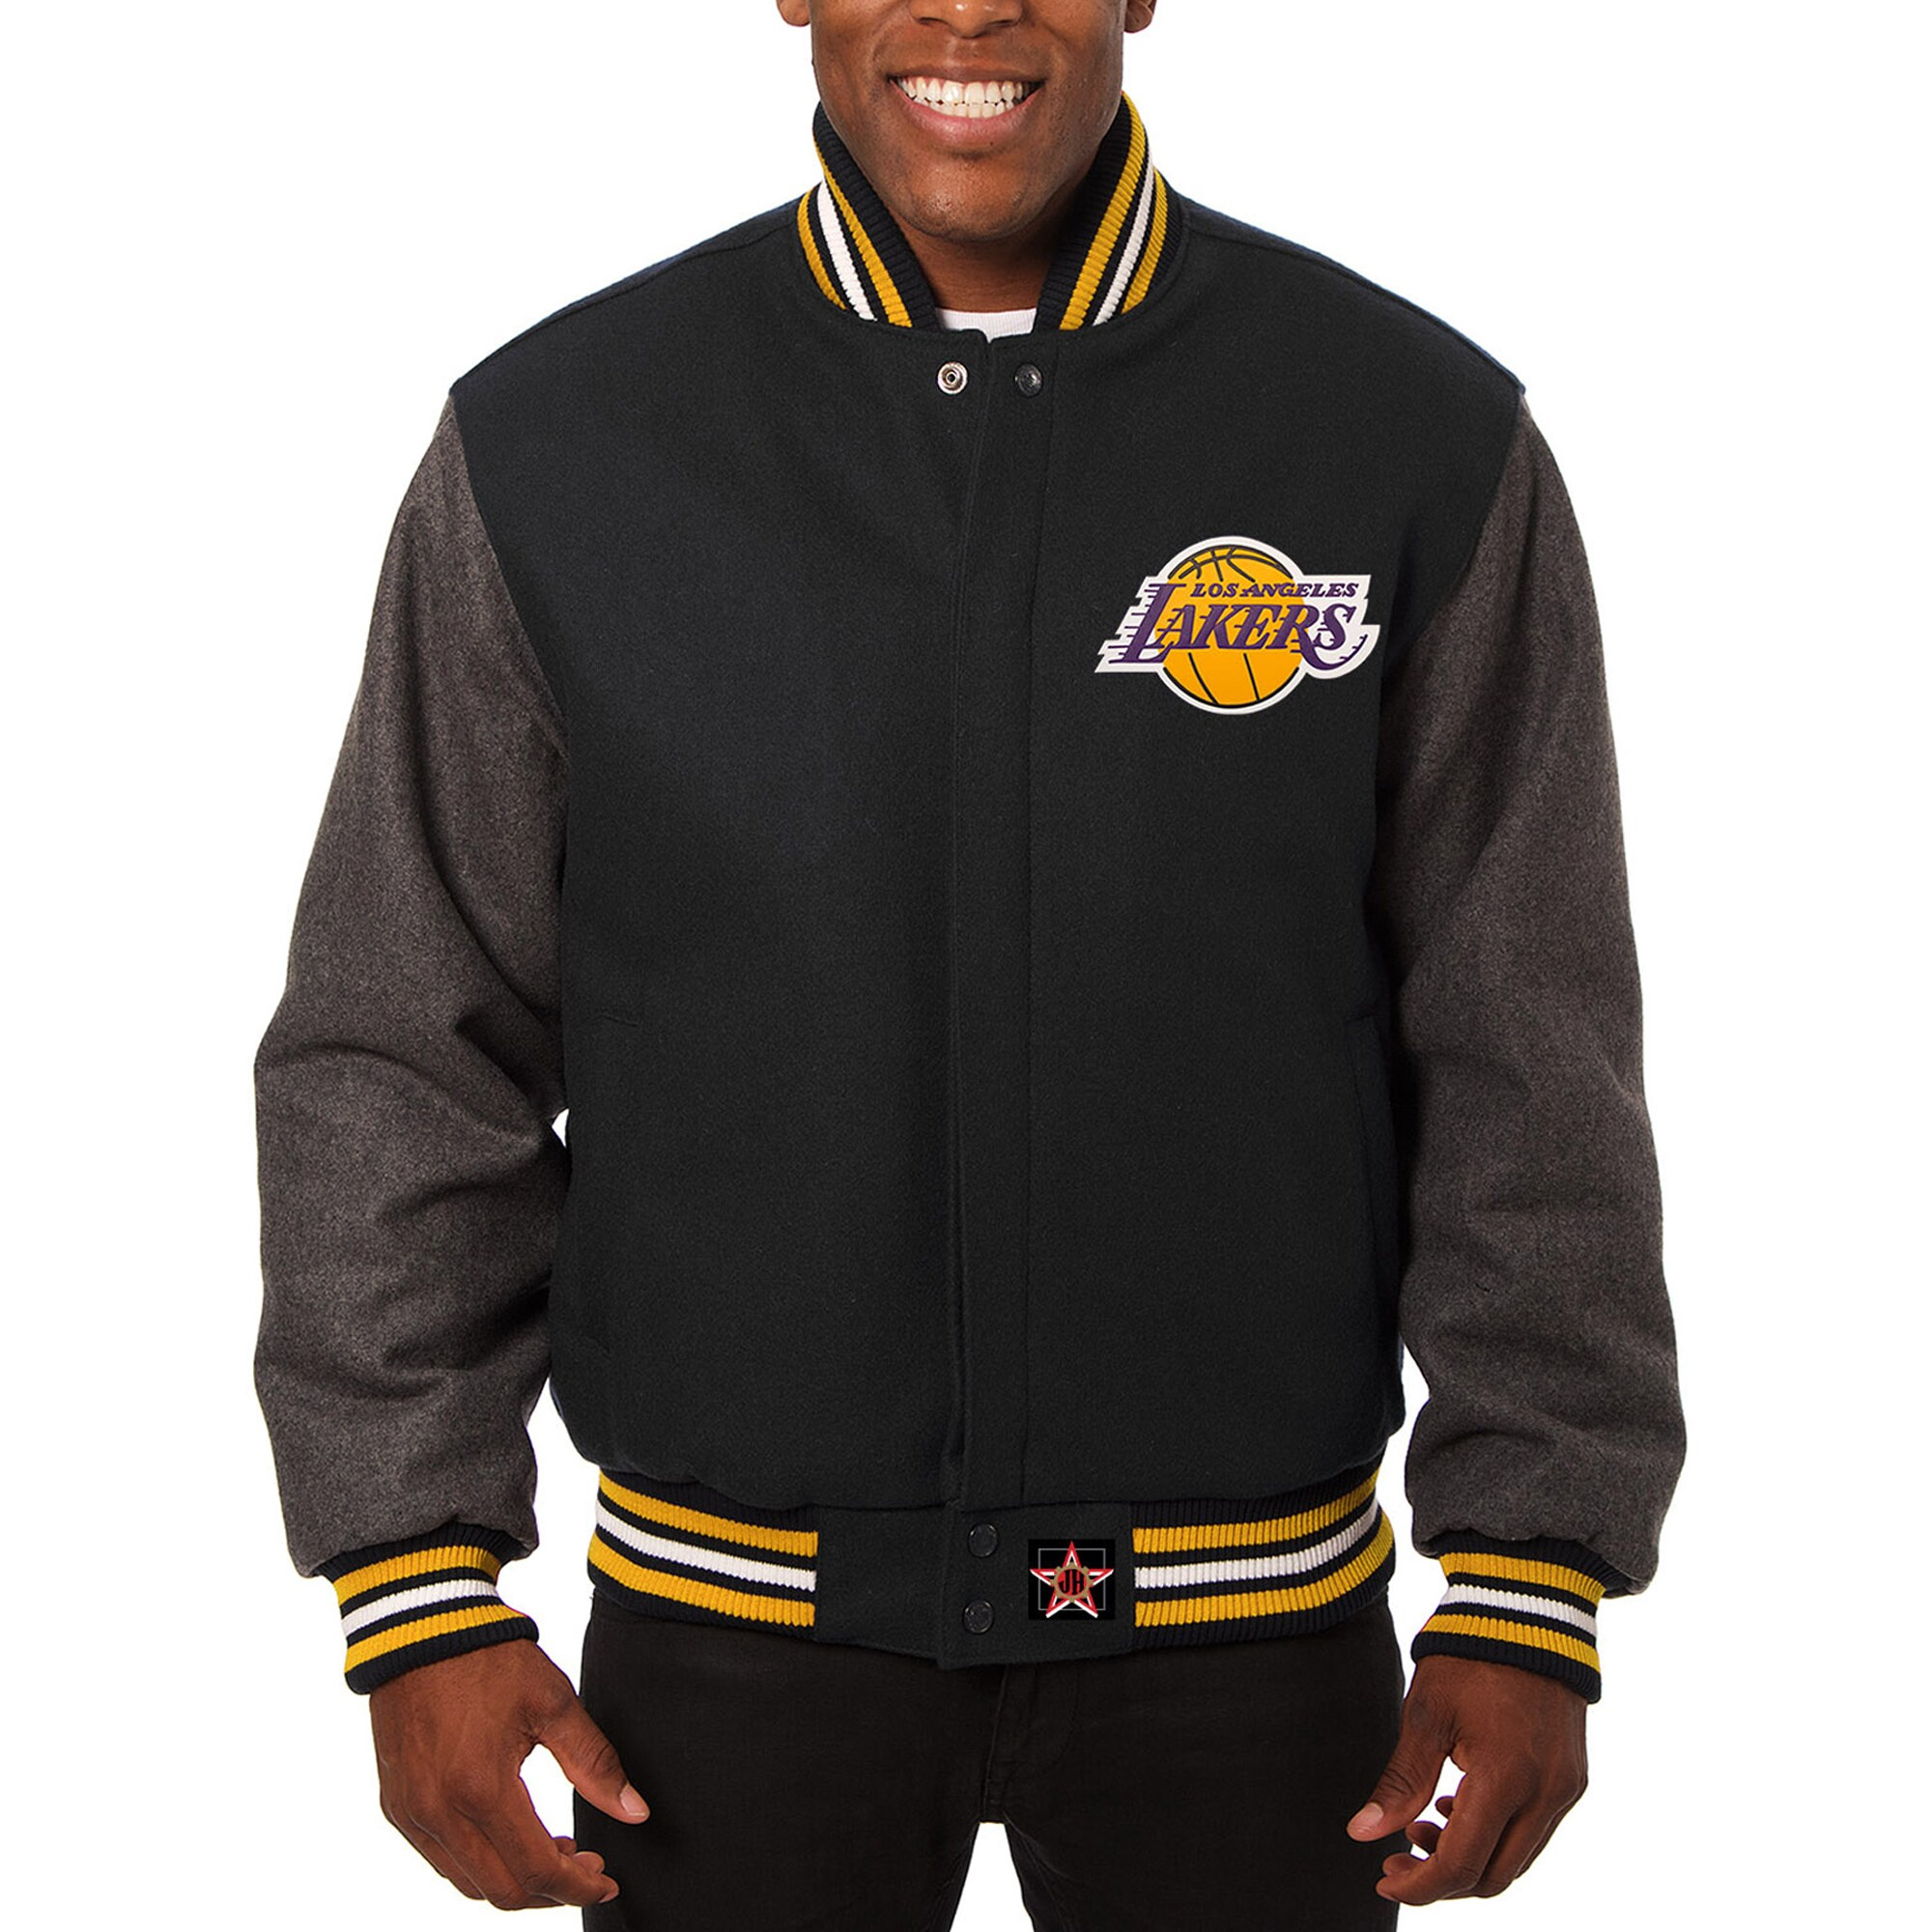 Los Angeles Lakers JH Design Domestic Two-Tone Wool Jacket - Black